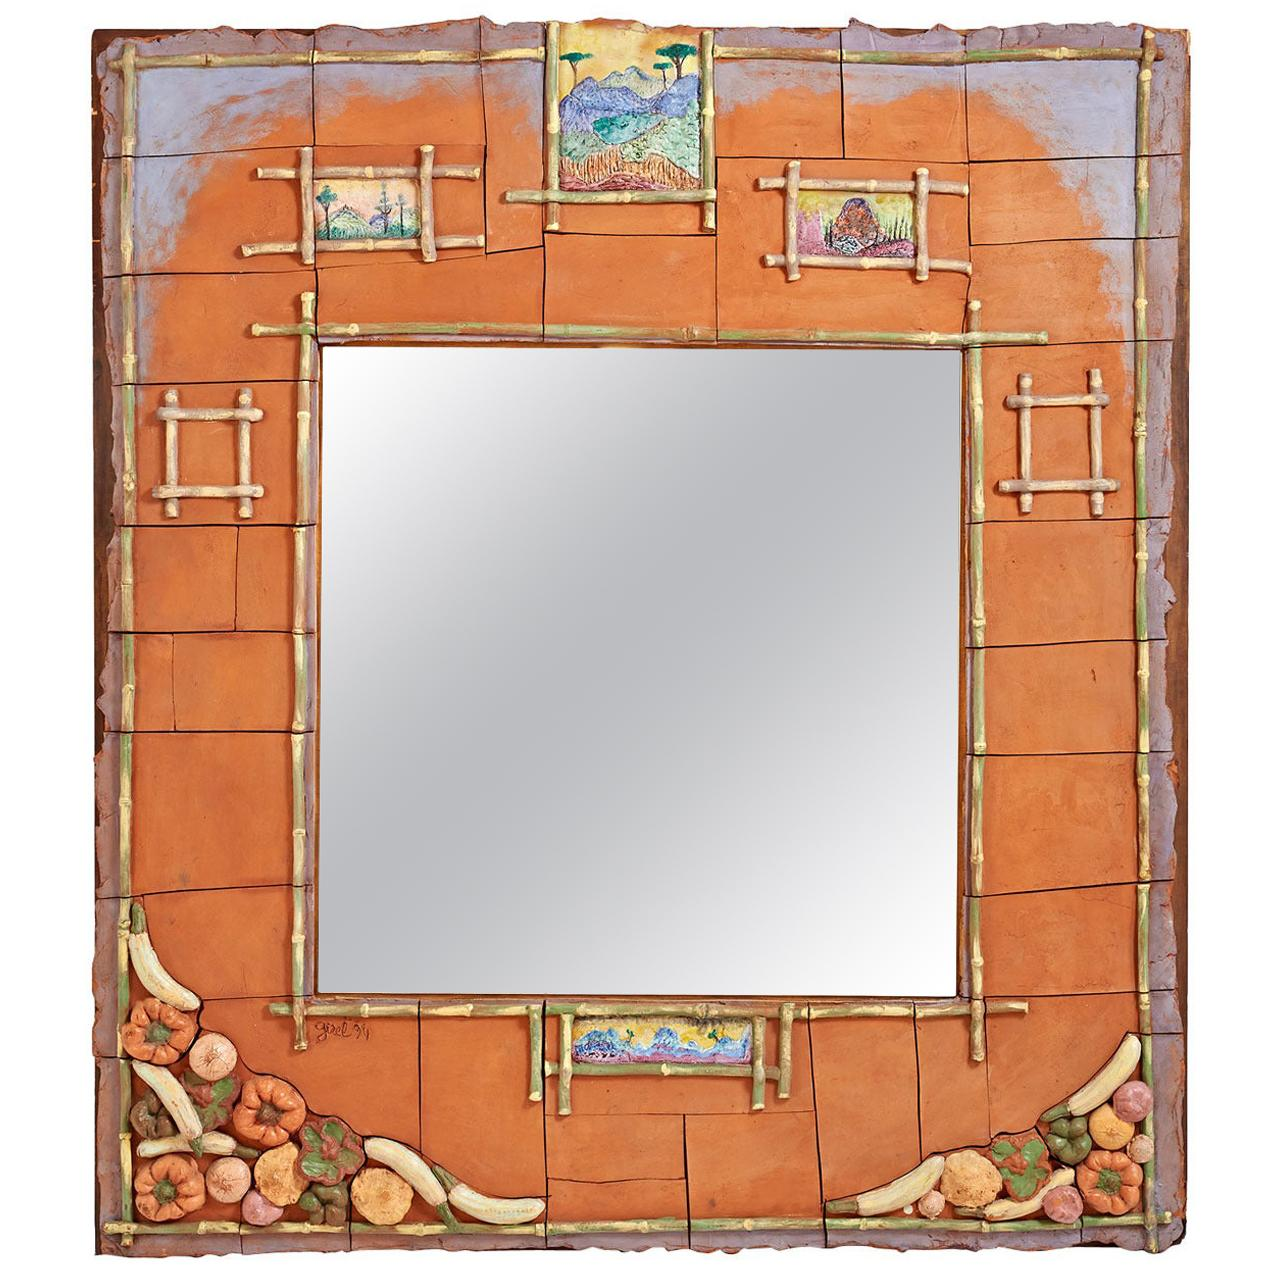 Magnificent Ceramic Mirror by Alain Girel for Hermes, Commissioned in 1994